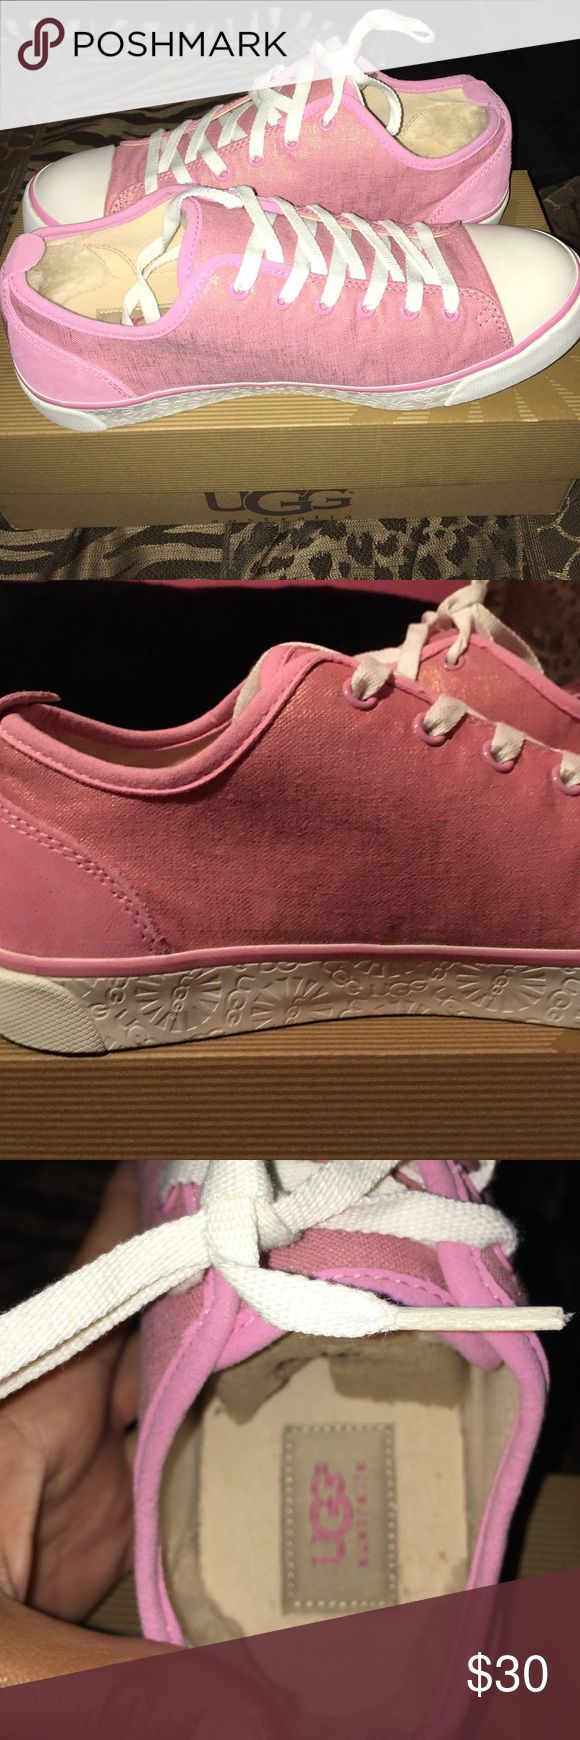 Ugg sneakers These are pink UGG sneakers with a gold tint. They are size 8. Only worn twice. Ask if you have any questions . UGG Shoes Sneakers